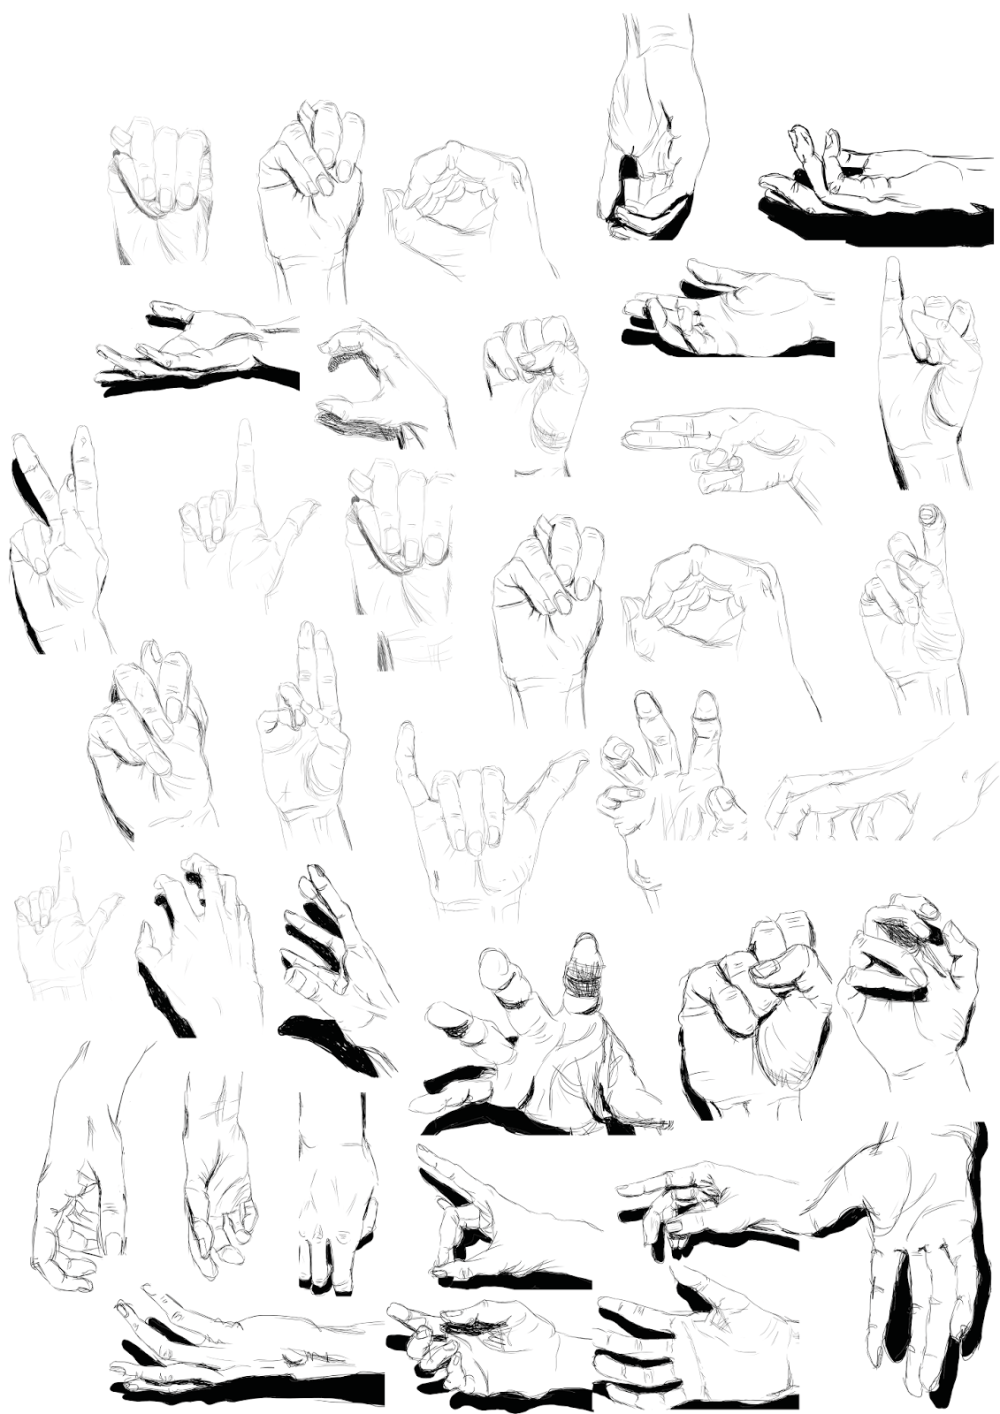 The second batch of hands I drew.